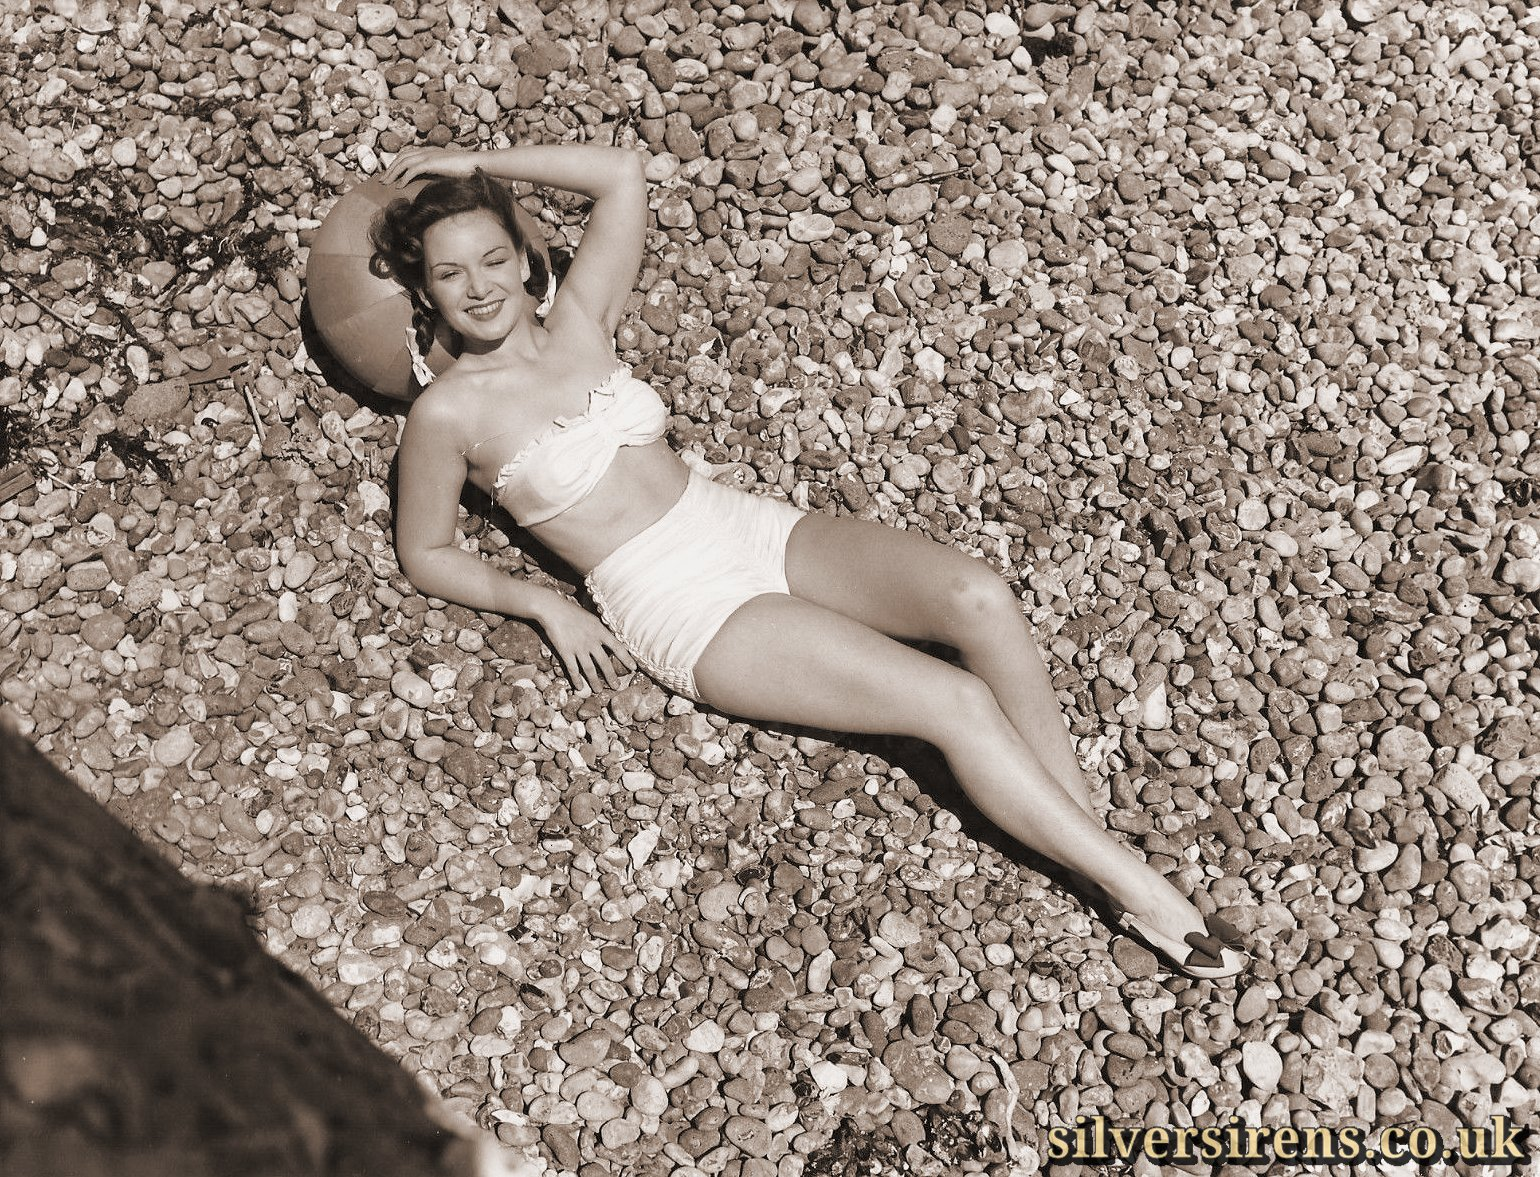 Making the most of the warm weather, Jean Kent, lovely J. Arthur Rank Organisation star, shortly to be seen in Gainsborough's Good Time Girl, sun-bathed on Brighton beach and later took a quick dip.